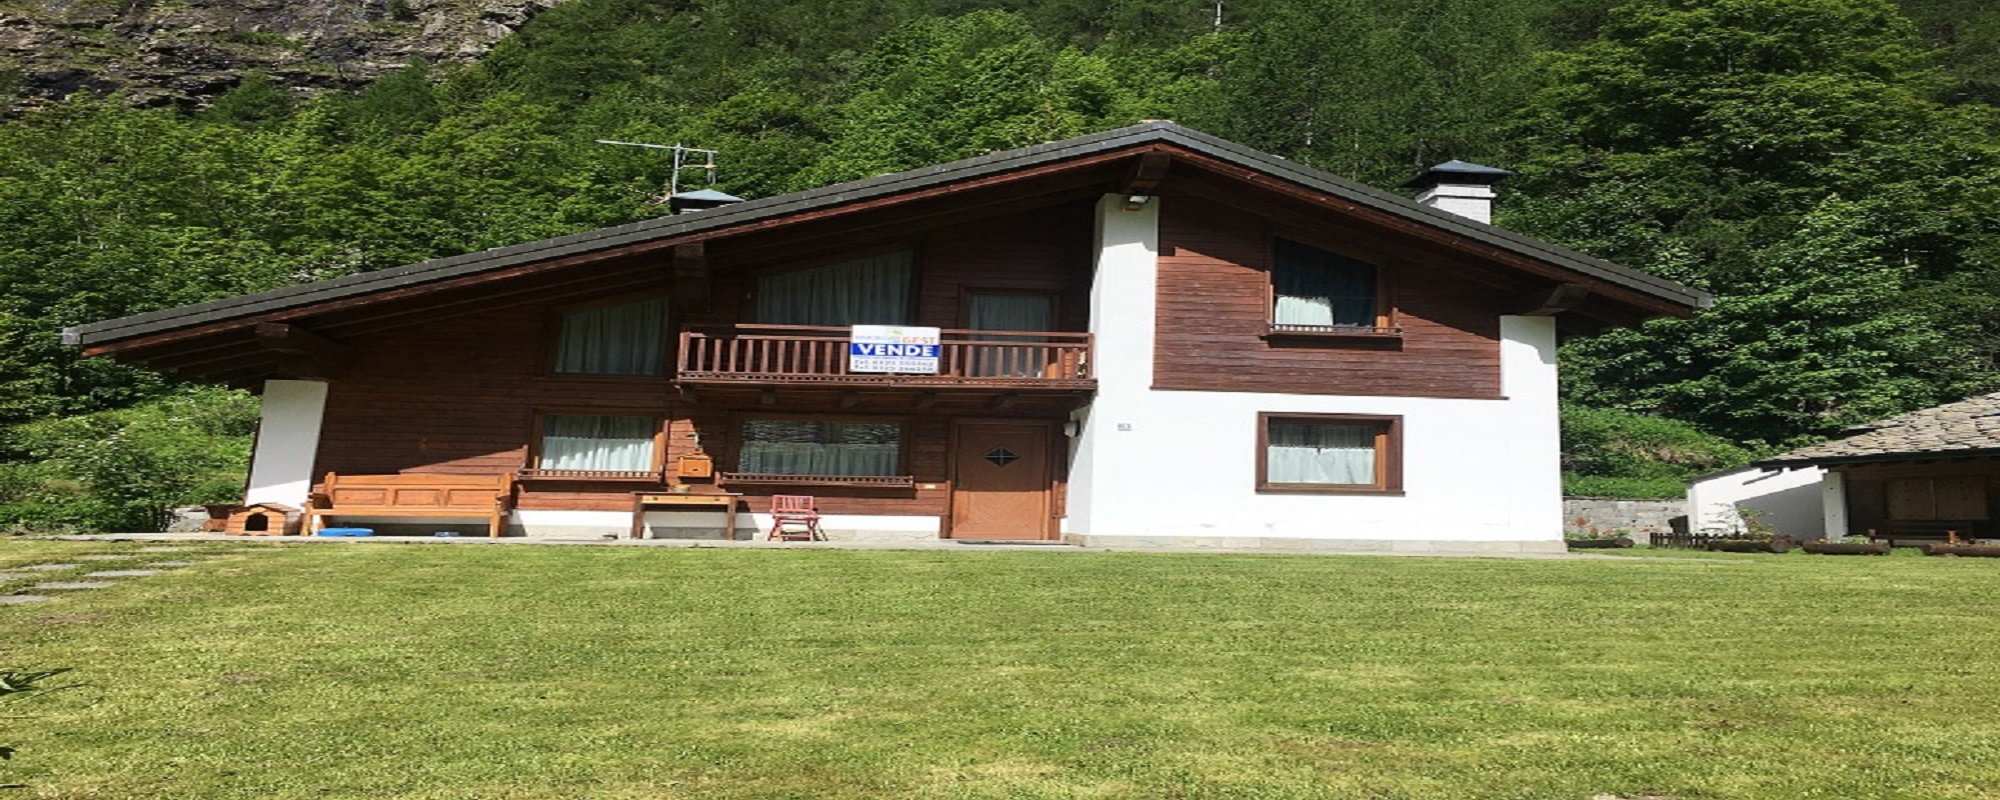 VENDITA VILLA A GRESSONEY LA TRINITE'